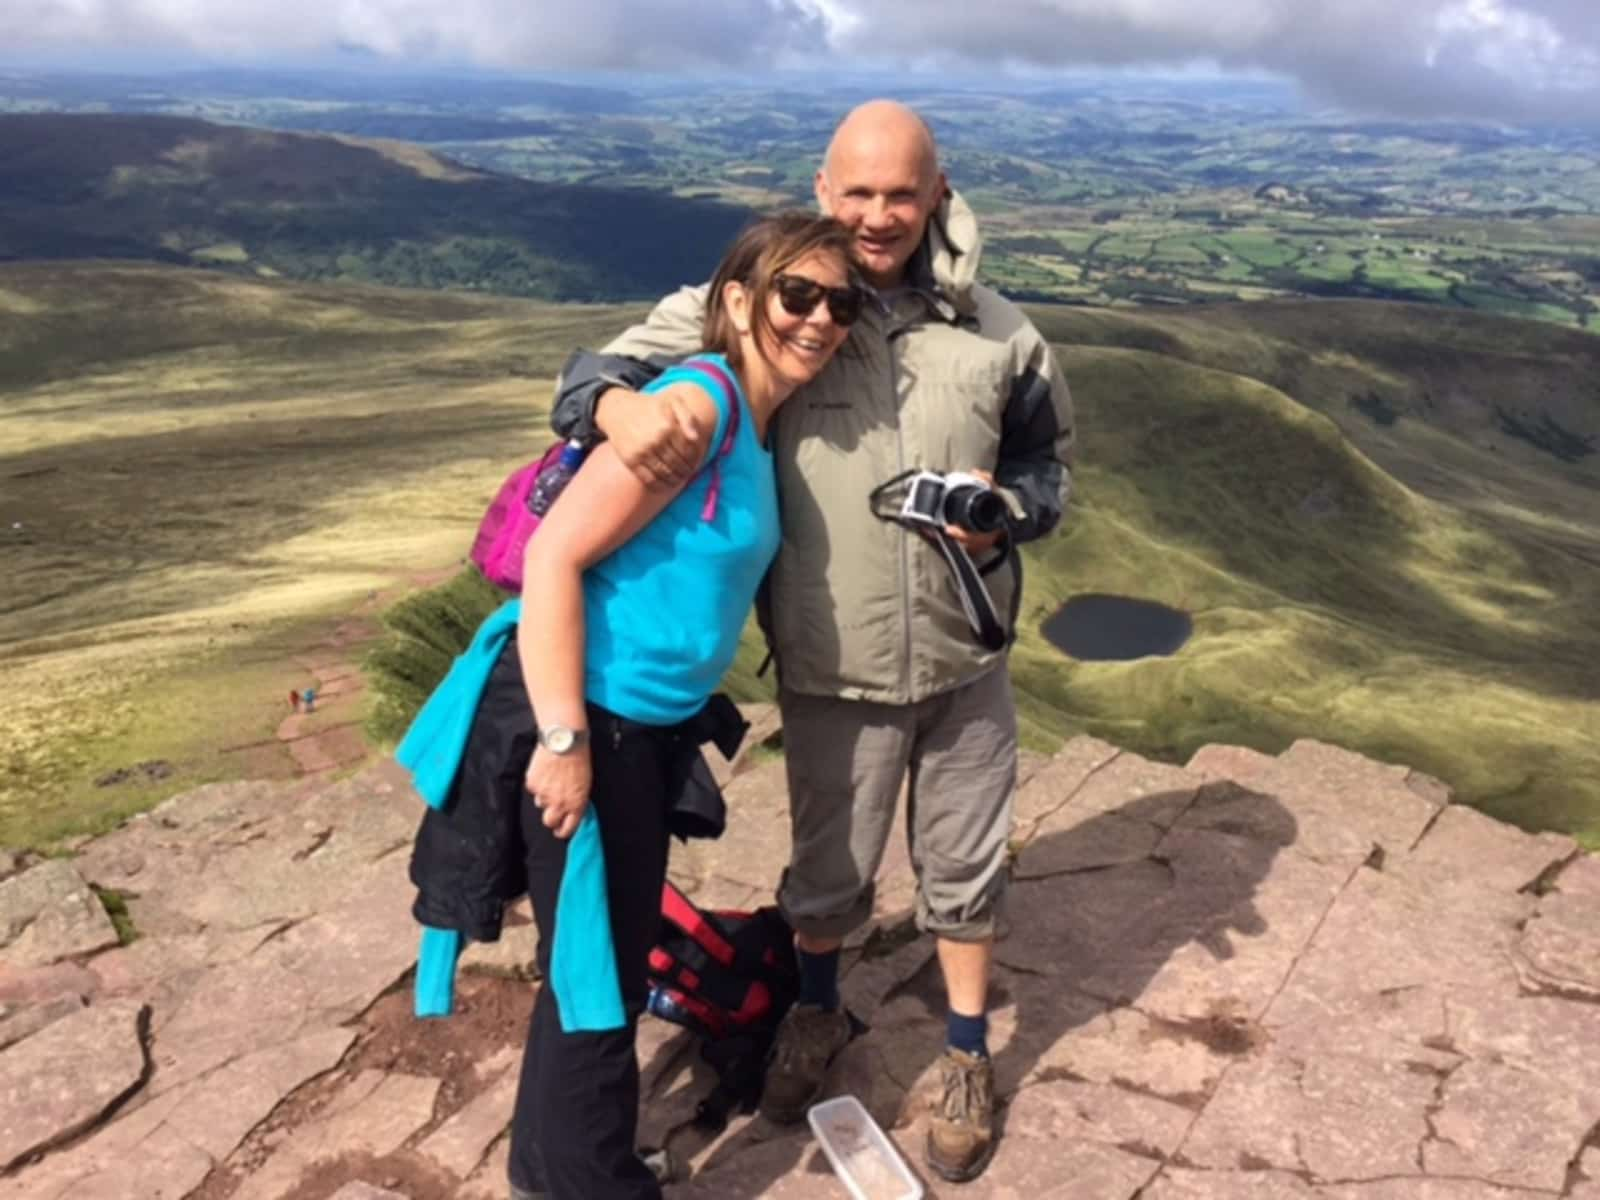 Charles & Jacquie from Wantage, United Kingdom